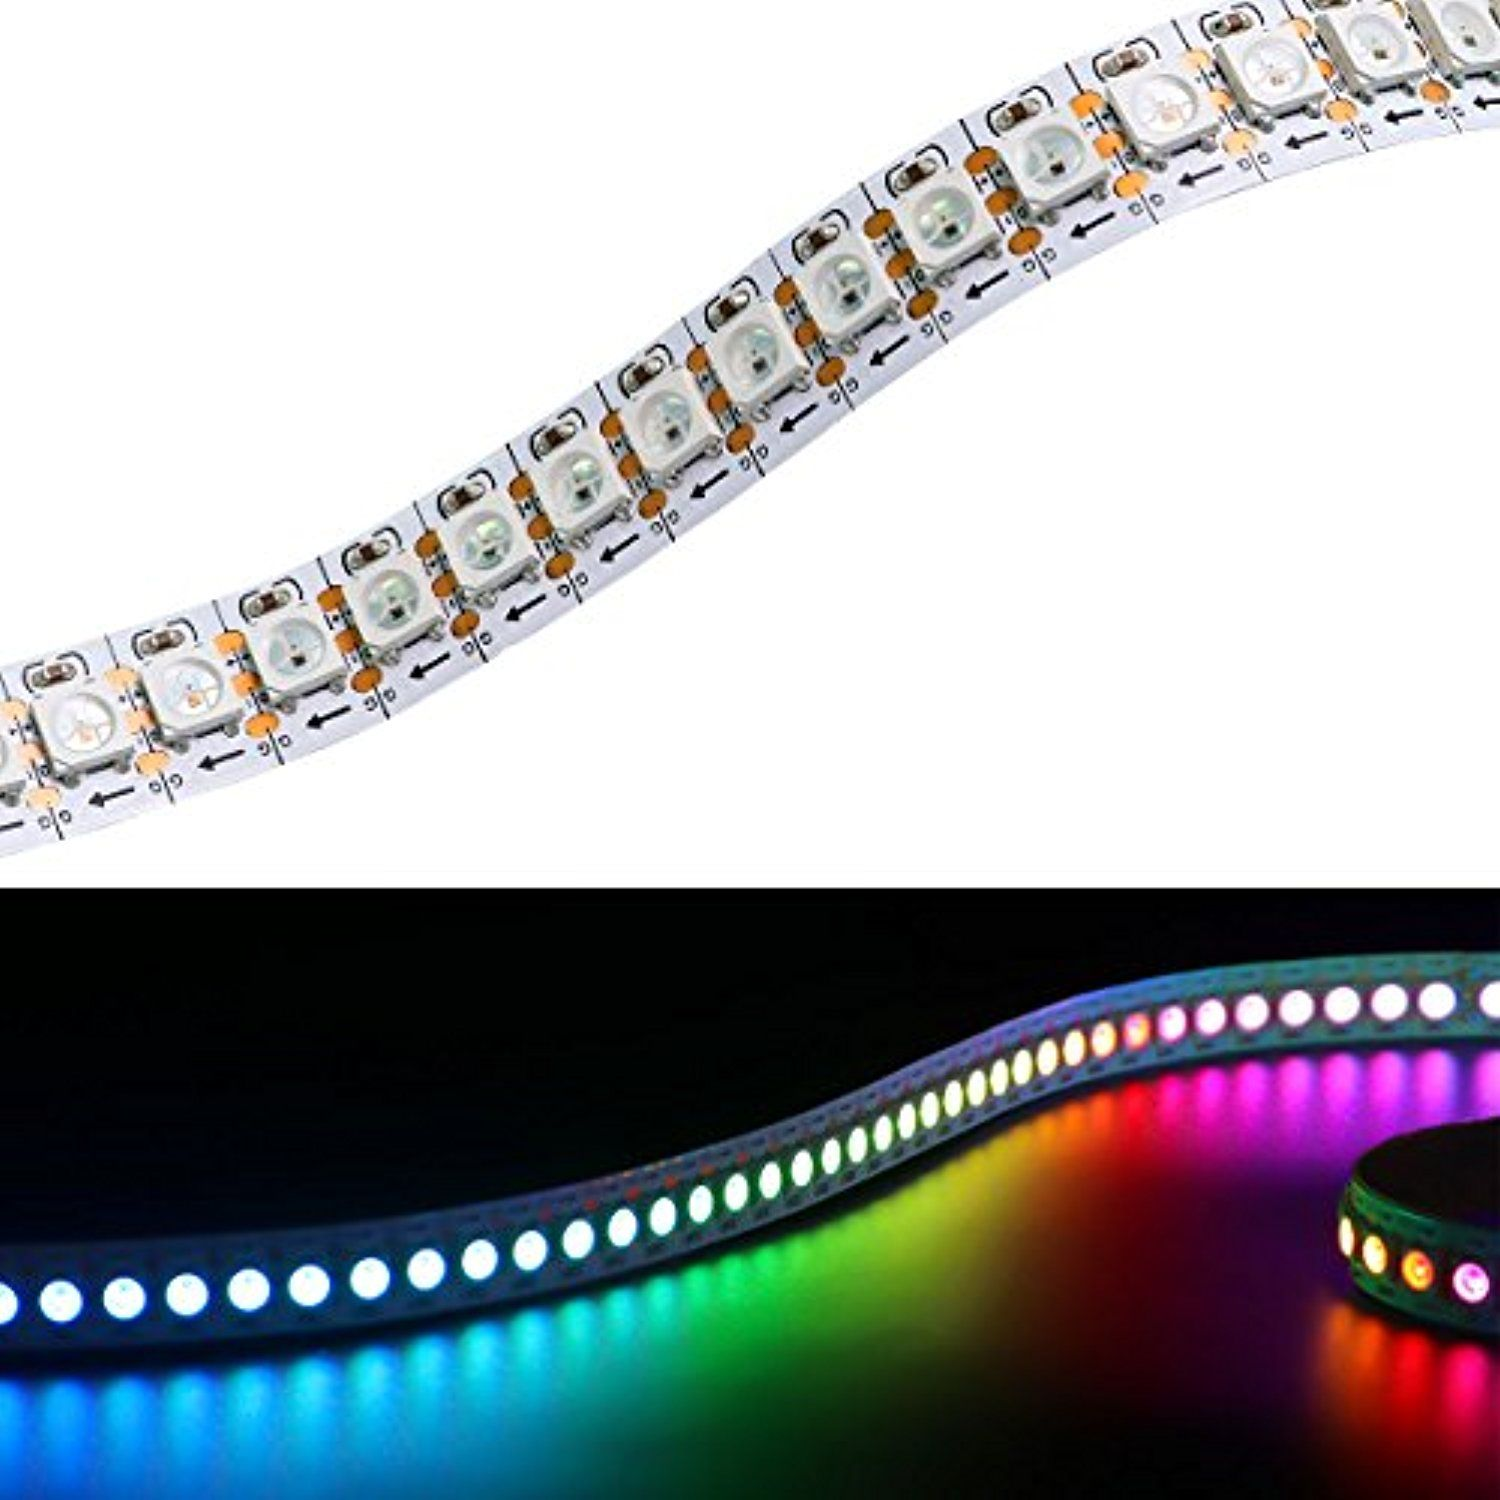 WIXURE WS2812B LED Strip Light Individually Addressable Programmable ...